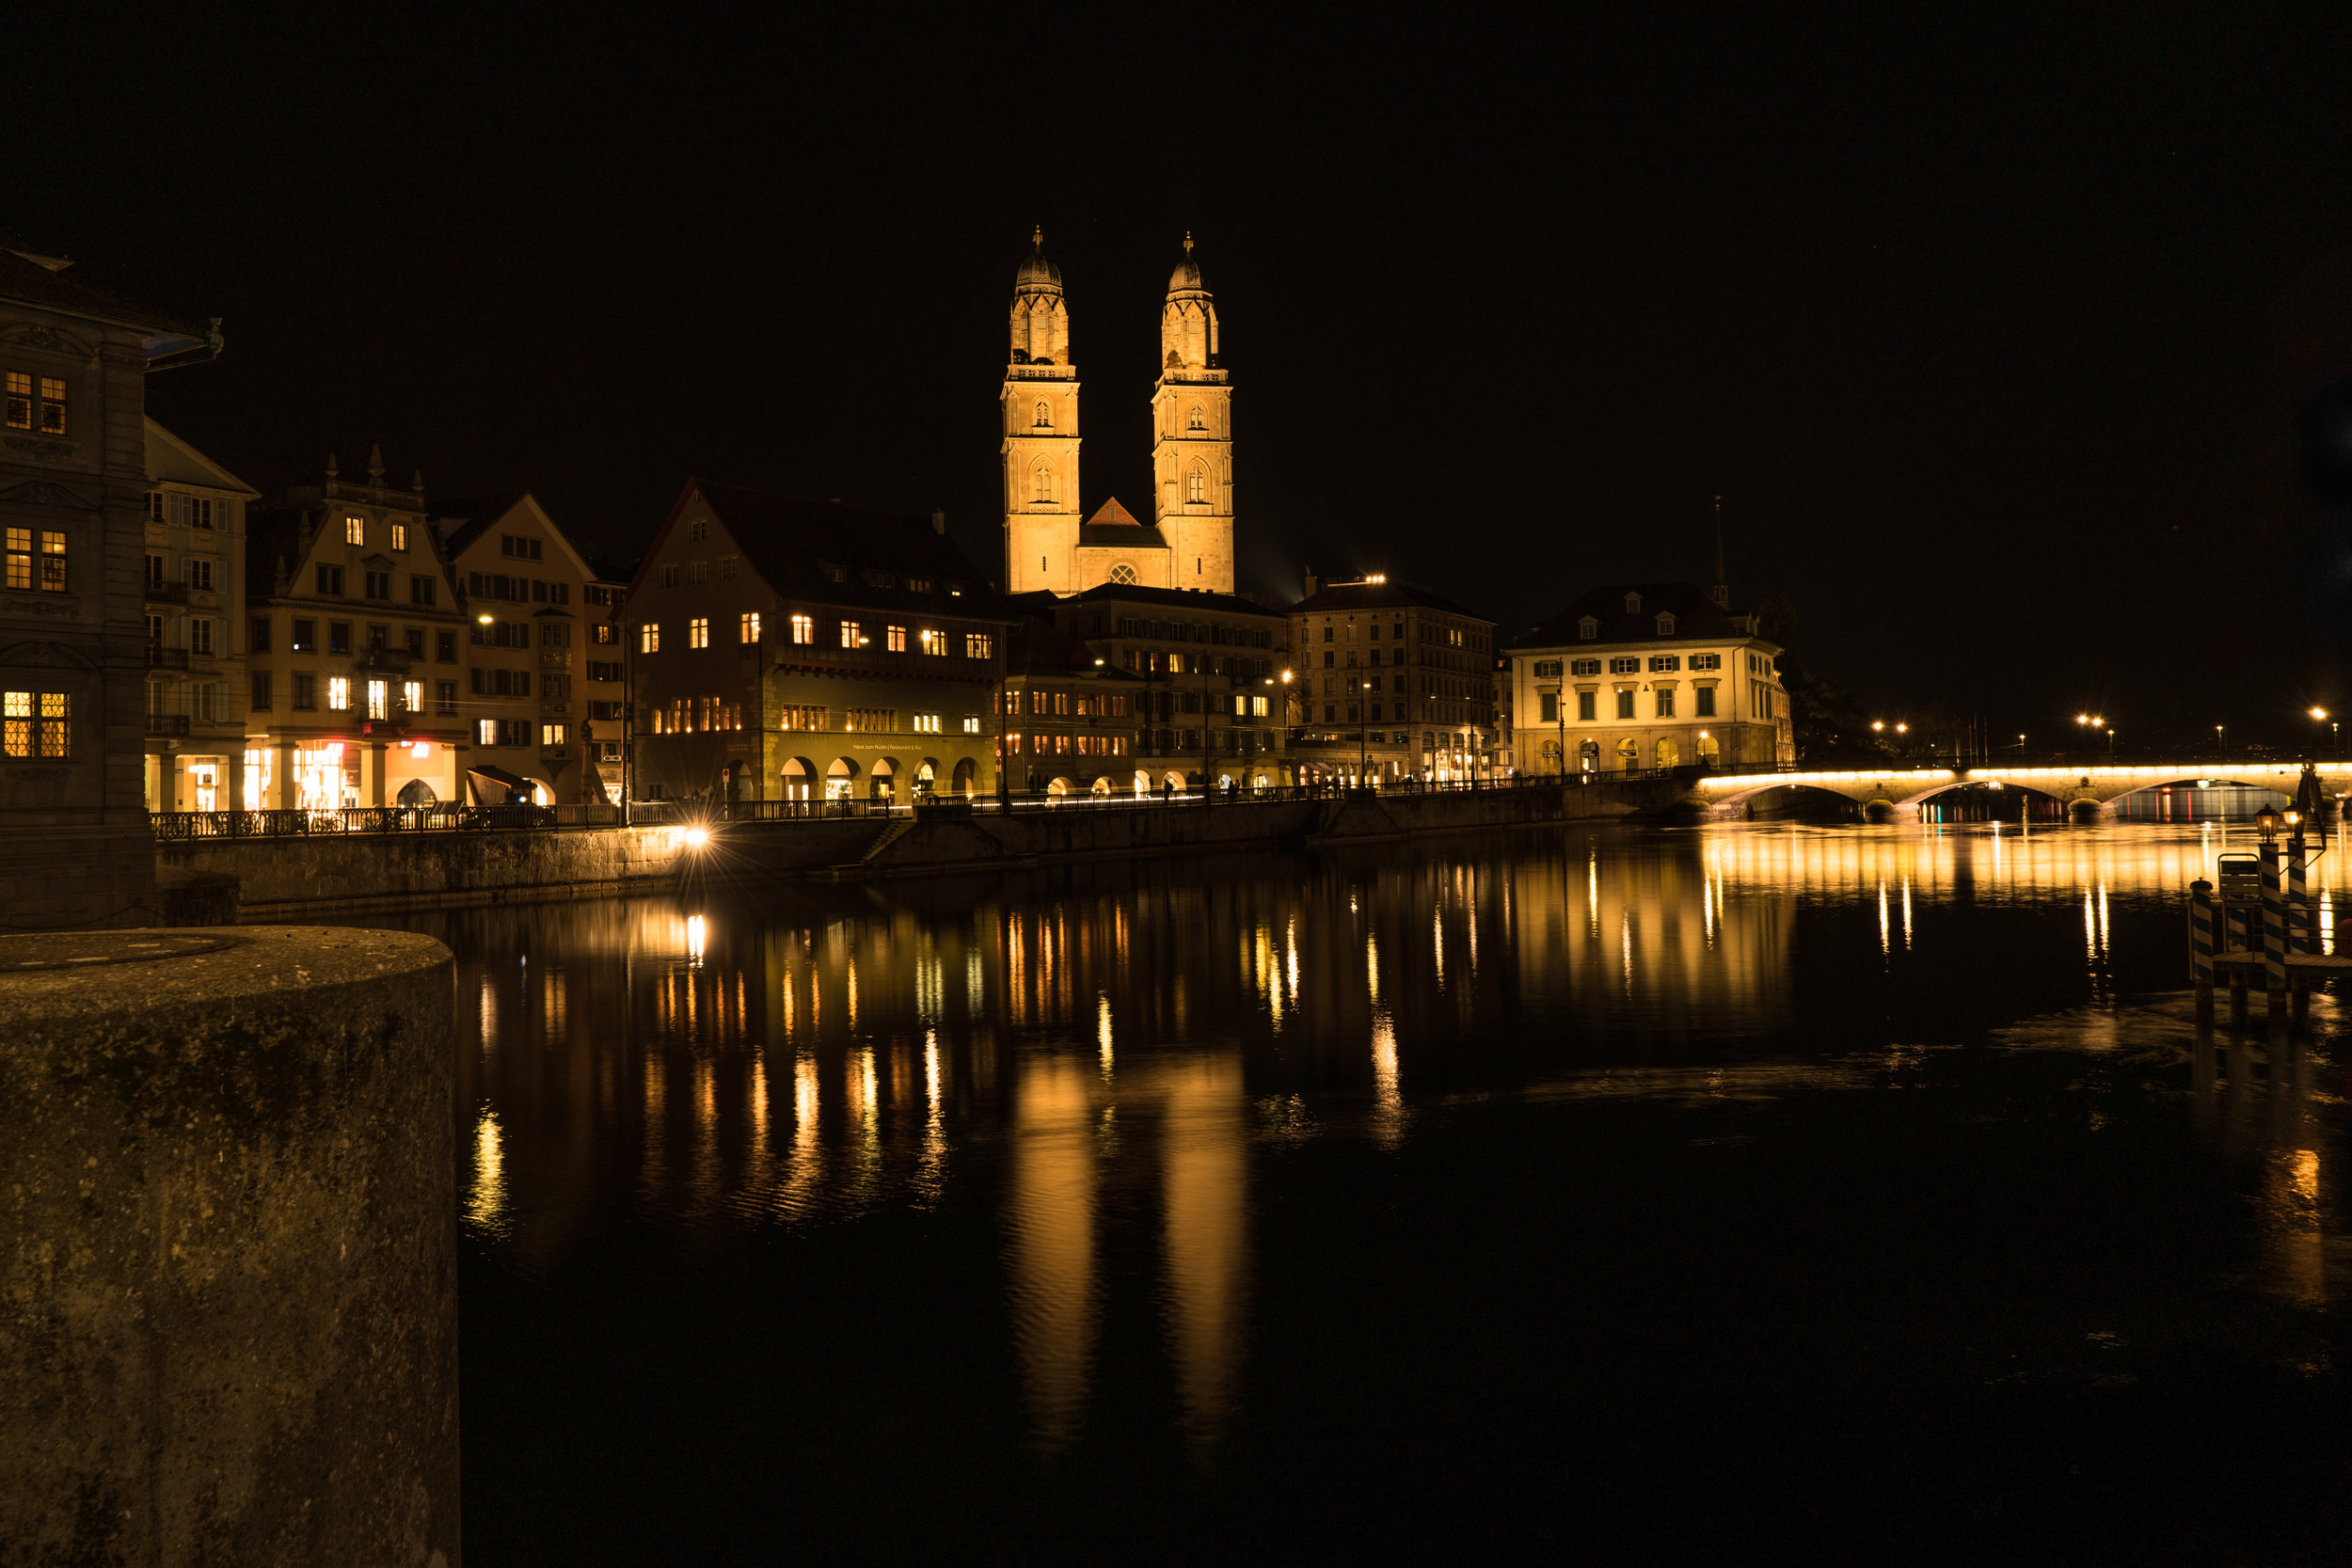 Grossmünster at night